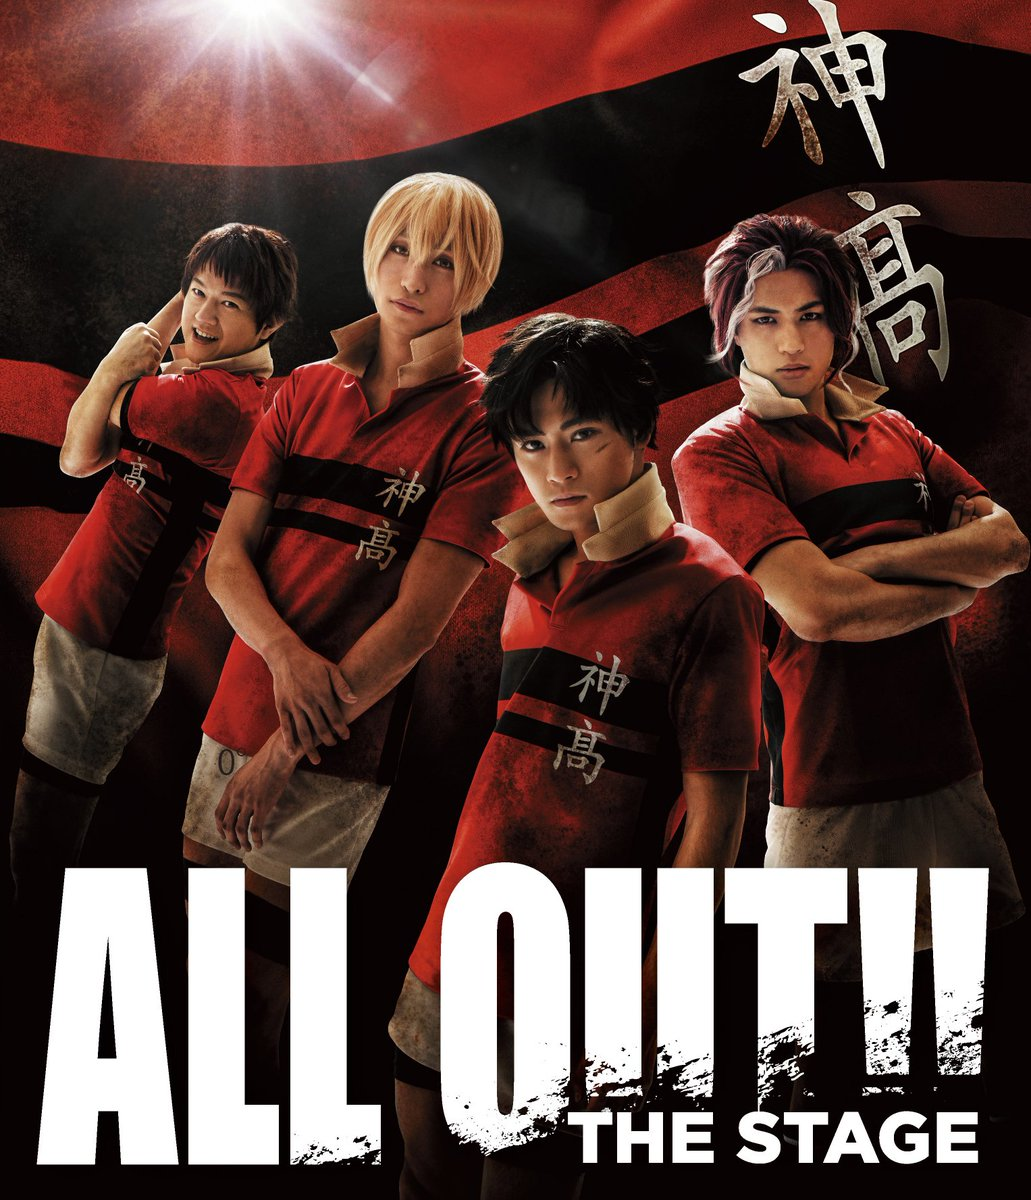 SPイベント~神高・嶺蔭 真夏の合同合宿~ 当日物販会場にて10月11日発売の舞台「ALL OUT!! THE STAG